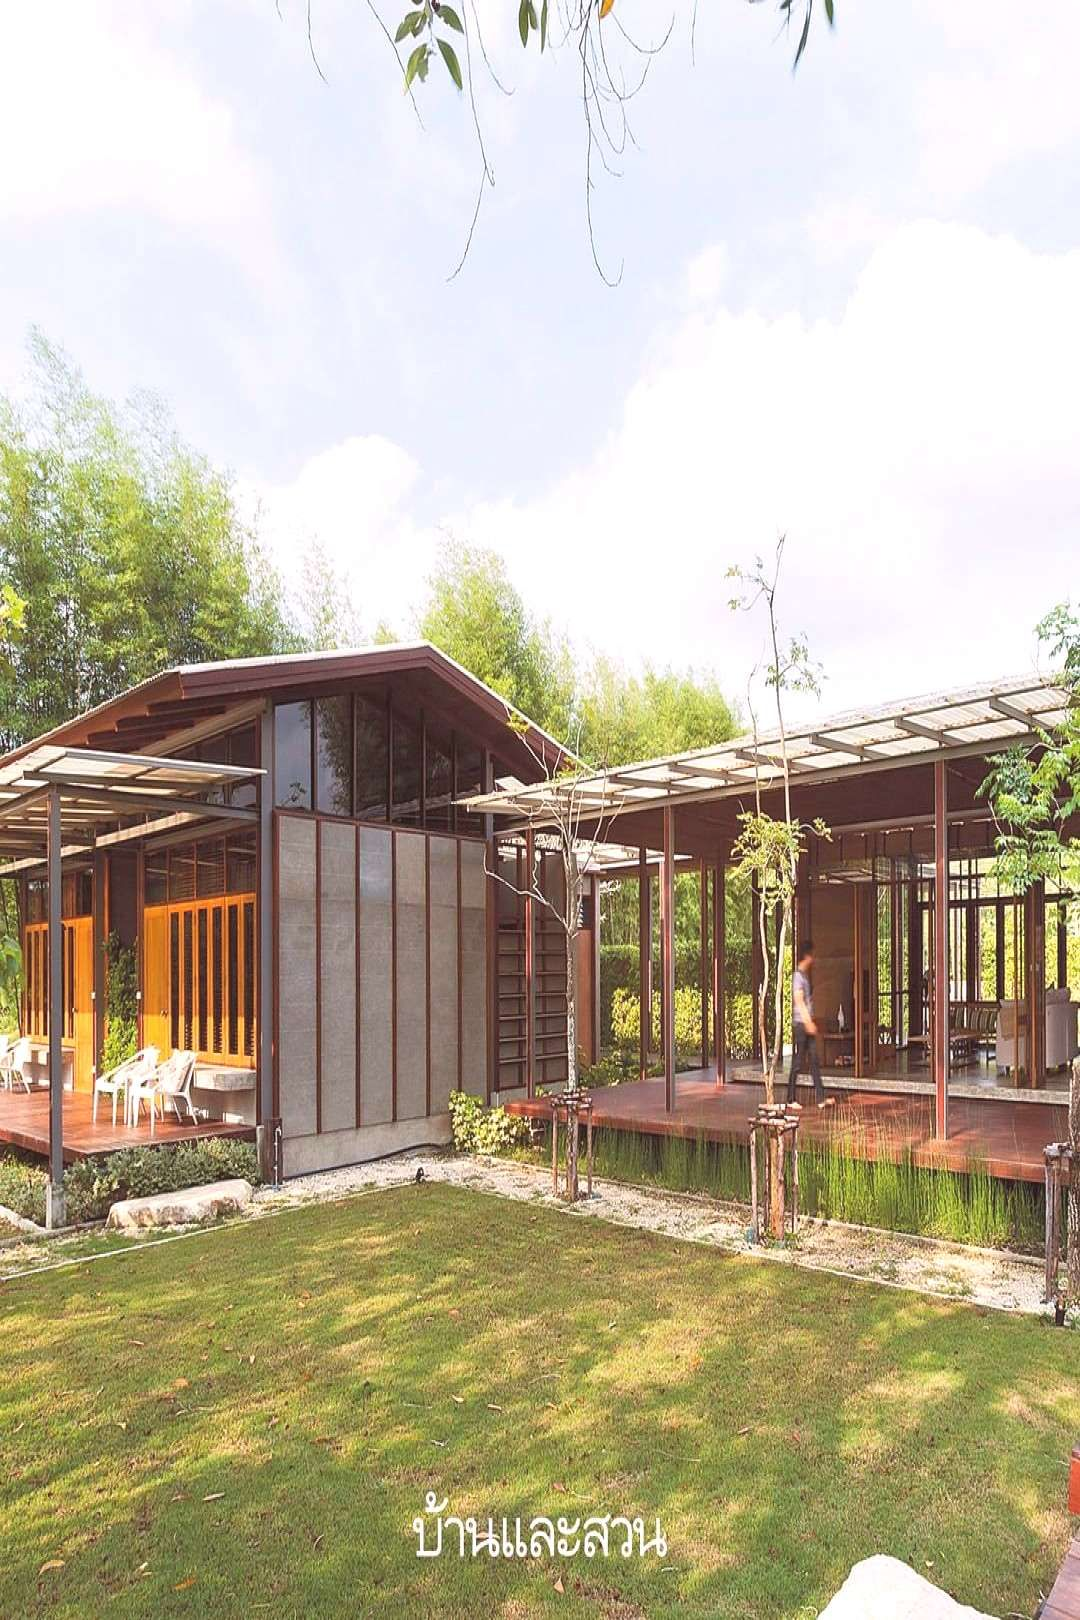 #thaistyle #outdoor #nature #plant #house #grass #cloud #tree #sky #and plant sky tree house grass cloud outdoor and natureYou can find Thai style and more on our website.plant sky tree house grass cloud outdoor and nature